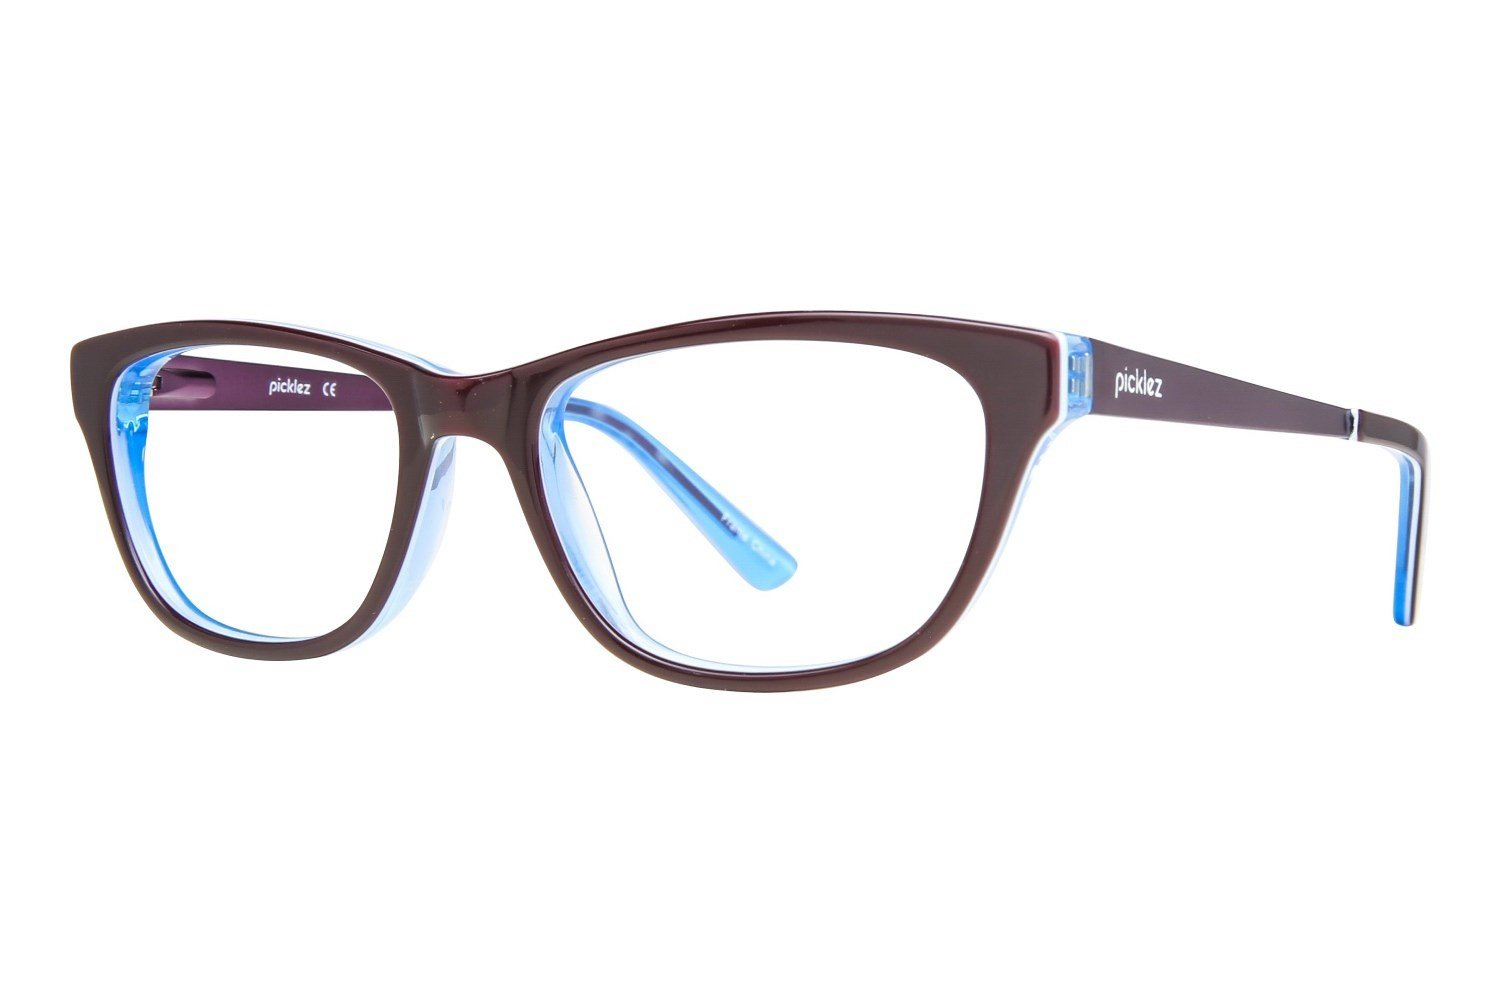 Eyeglass Frame Lookup : Extra Large Ladies Eyeglass Frames - Search